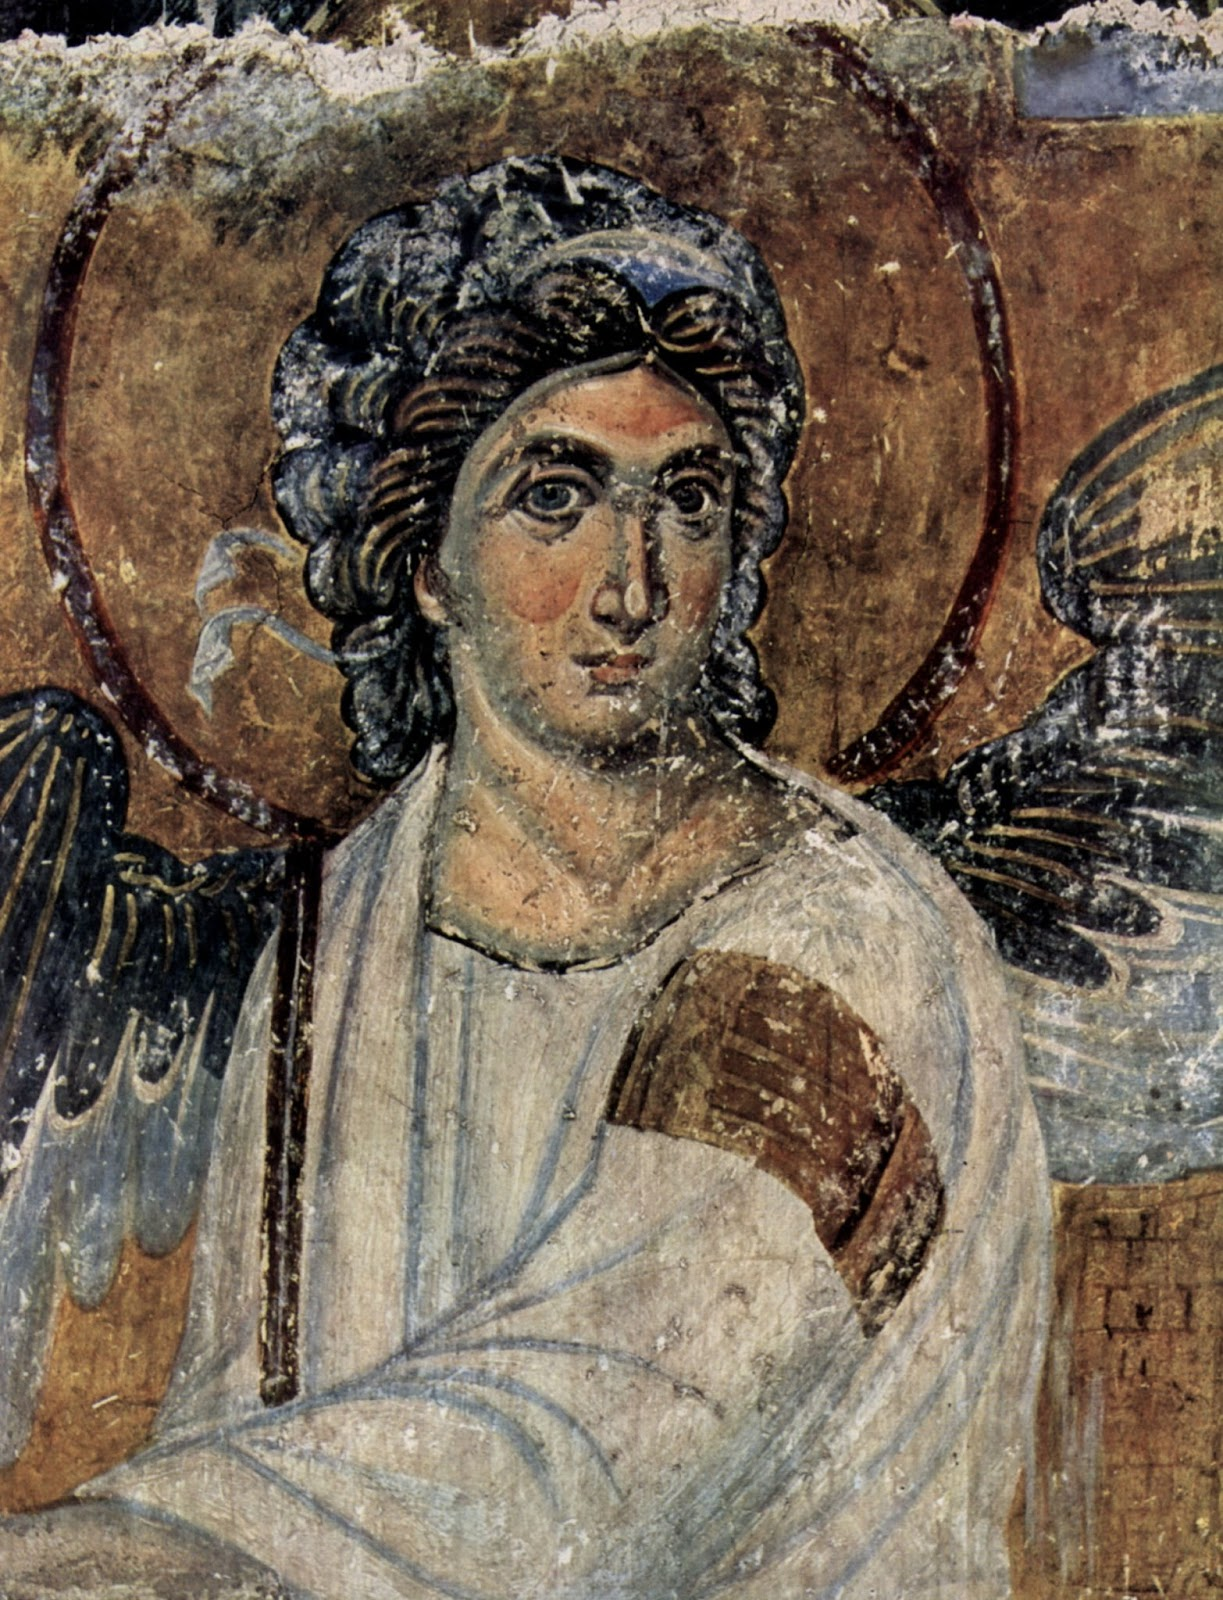 Mythology: 44 Paintings, RELIGIOUS ART - Paintings from the Bible, with footnotes. Saint Michael, Archangel, and Chief Commander, 22